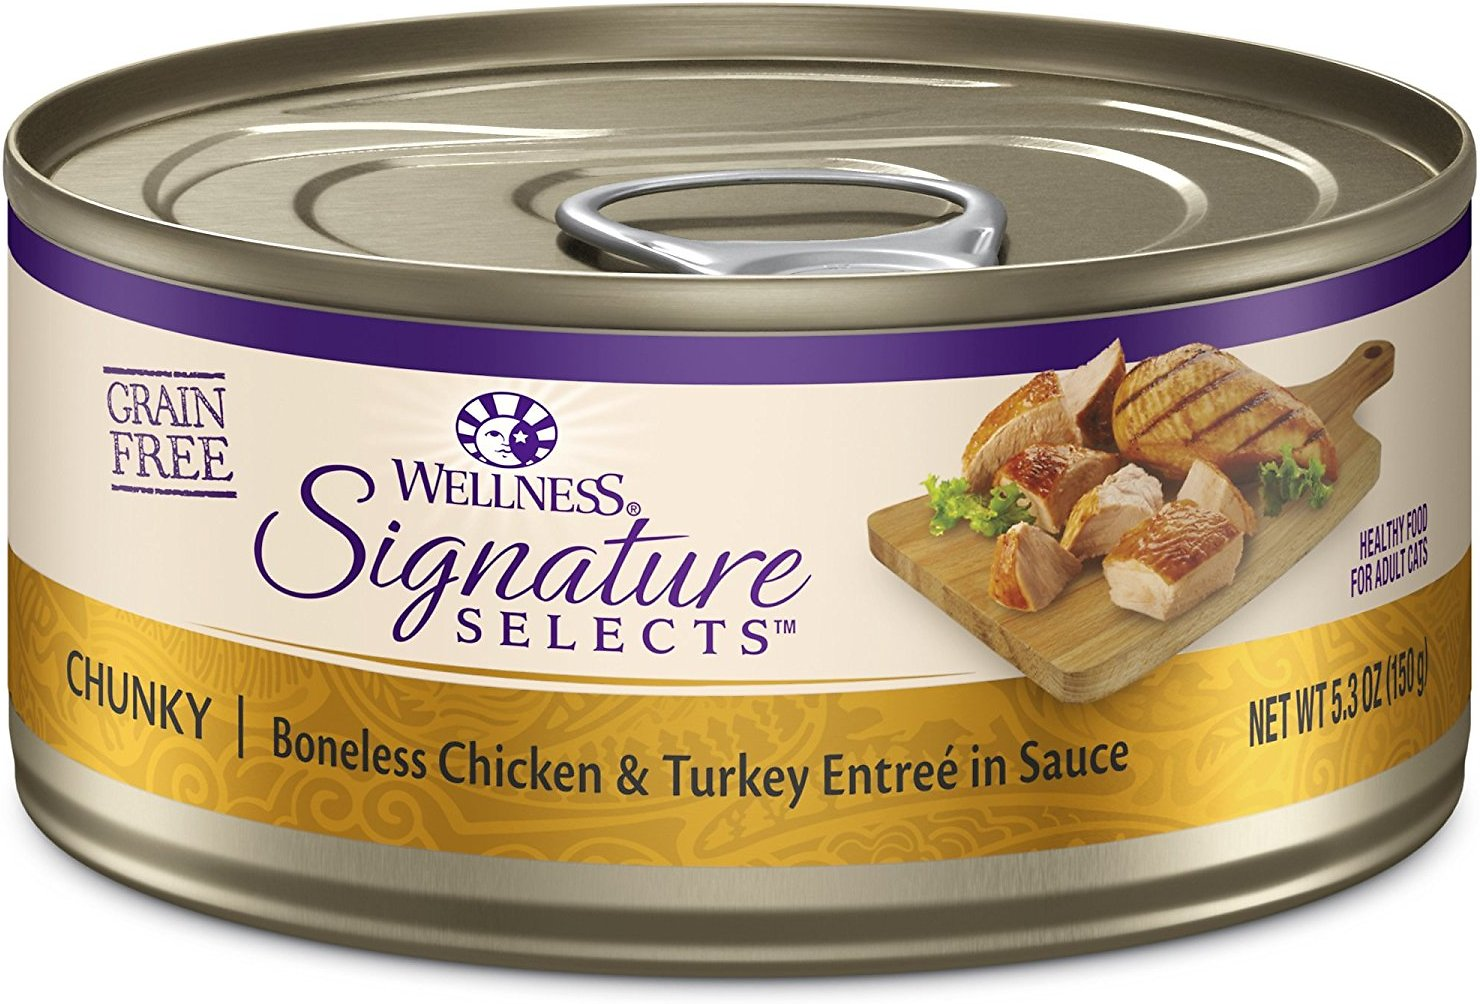 Wellness CORE Signature Selects Chunky Boneless Chicken & Turkey Entree in Sauce Grain-Free Canned Cat Food, 2.8-oz